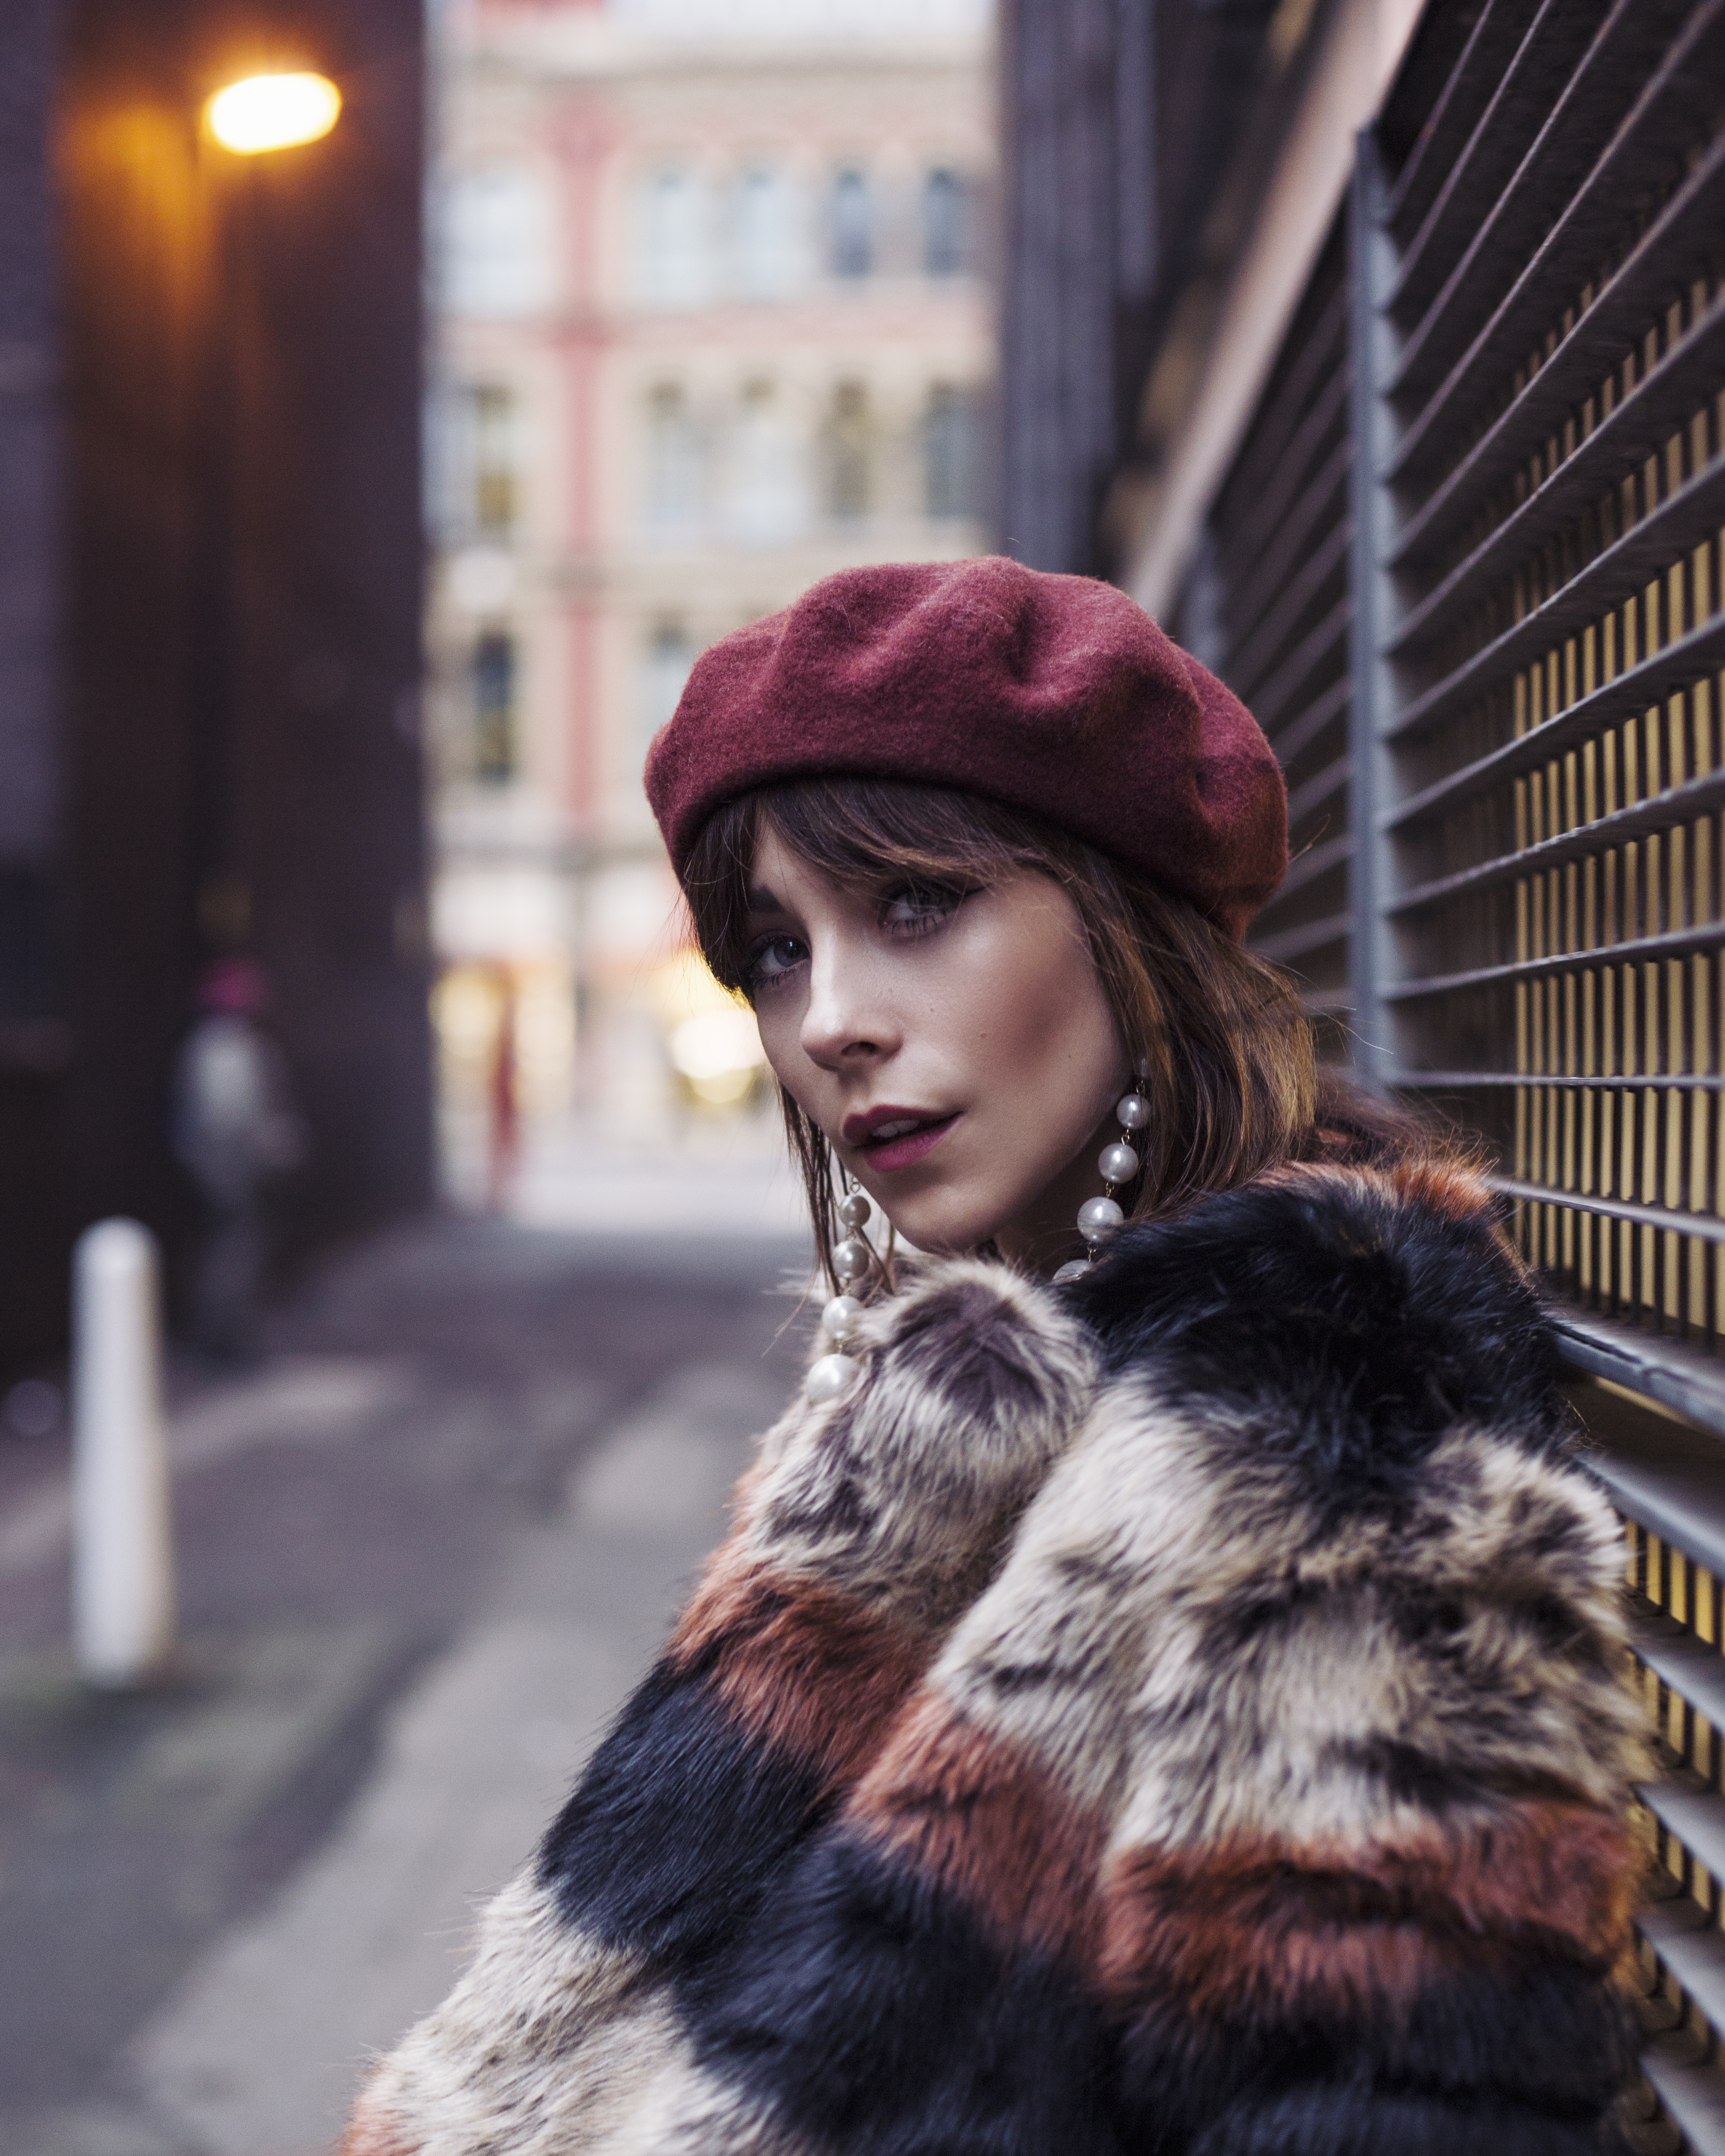 MEGAN ELLABY IN MANCHESTER'S NORTHERN QUARTER